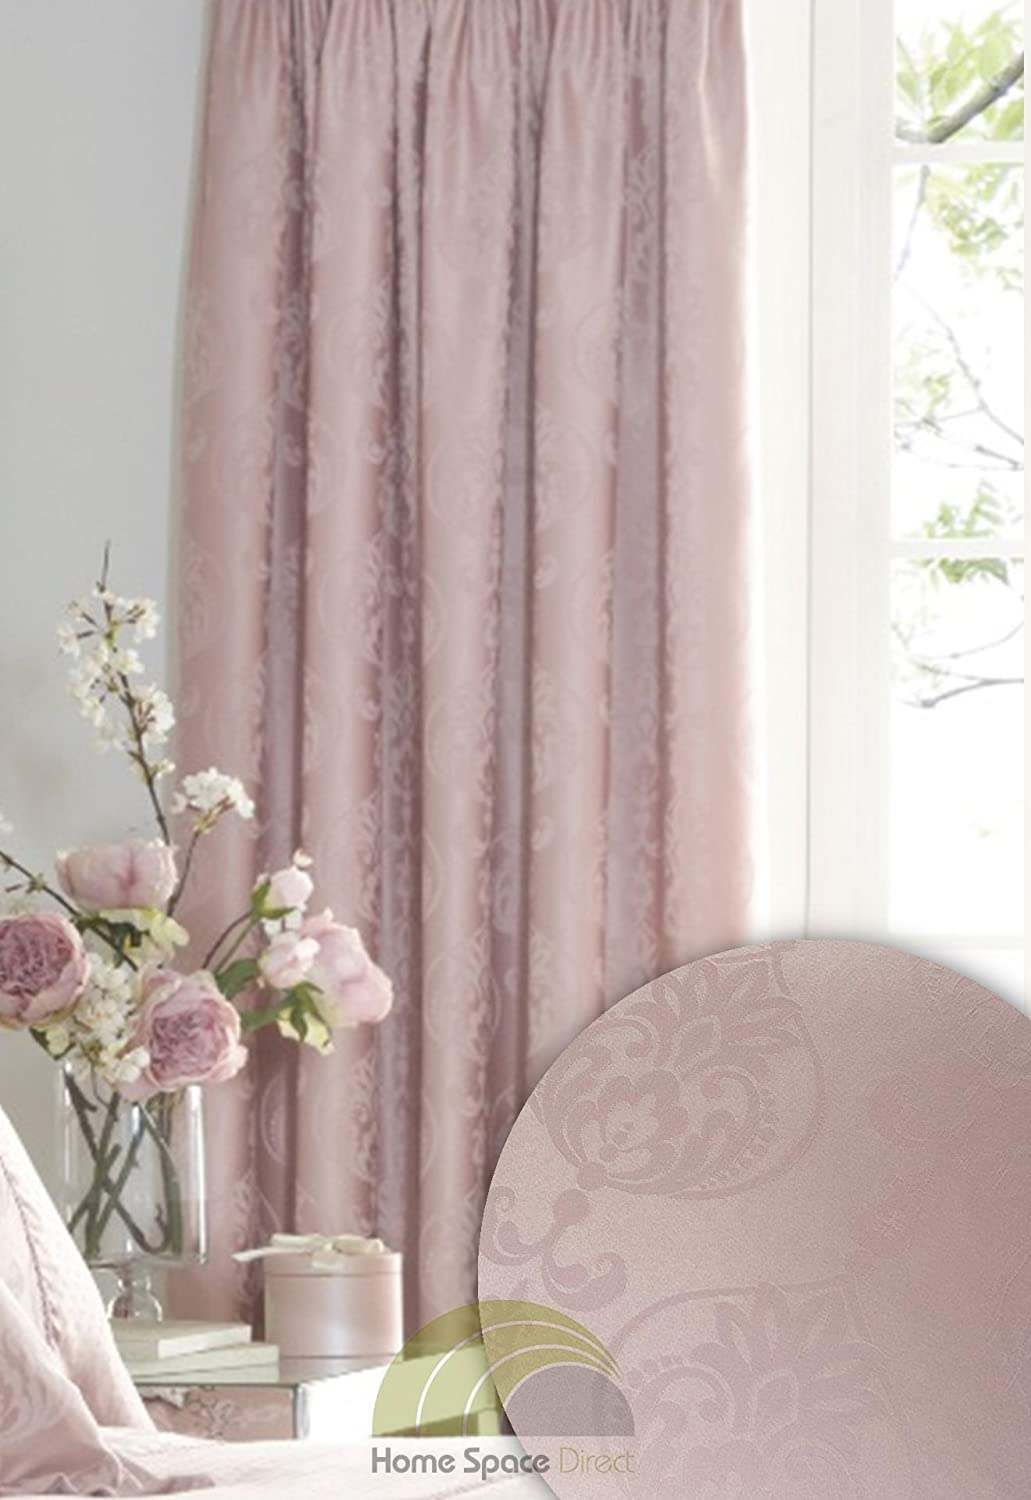 Luxury Rose Pink Jacquard Woven Curtains Fully Lined Pencil Pleat 66x72  Inches: Amazon.co.uk: Kitchen U0026 Home